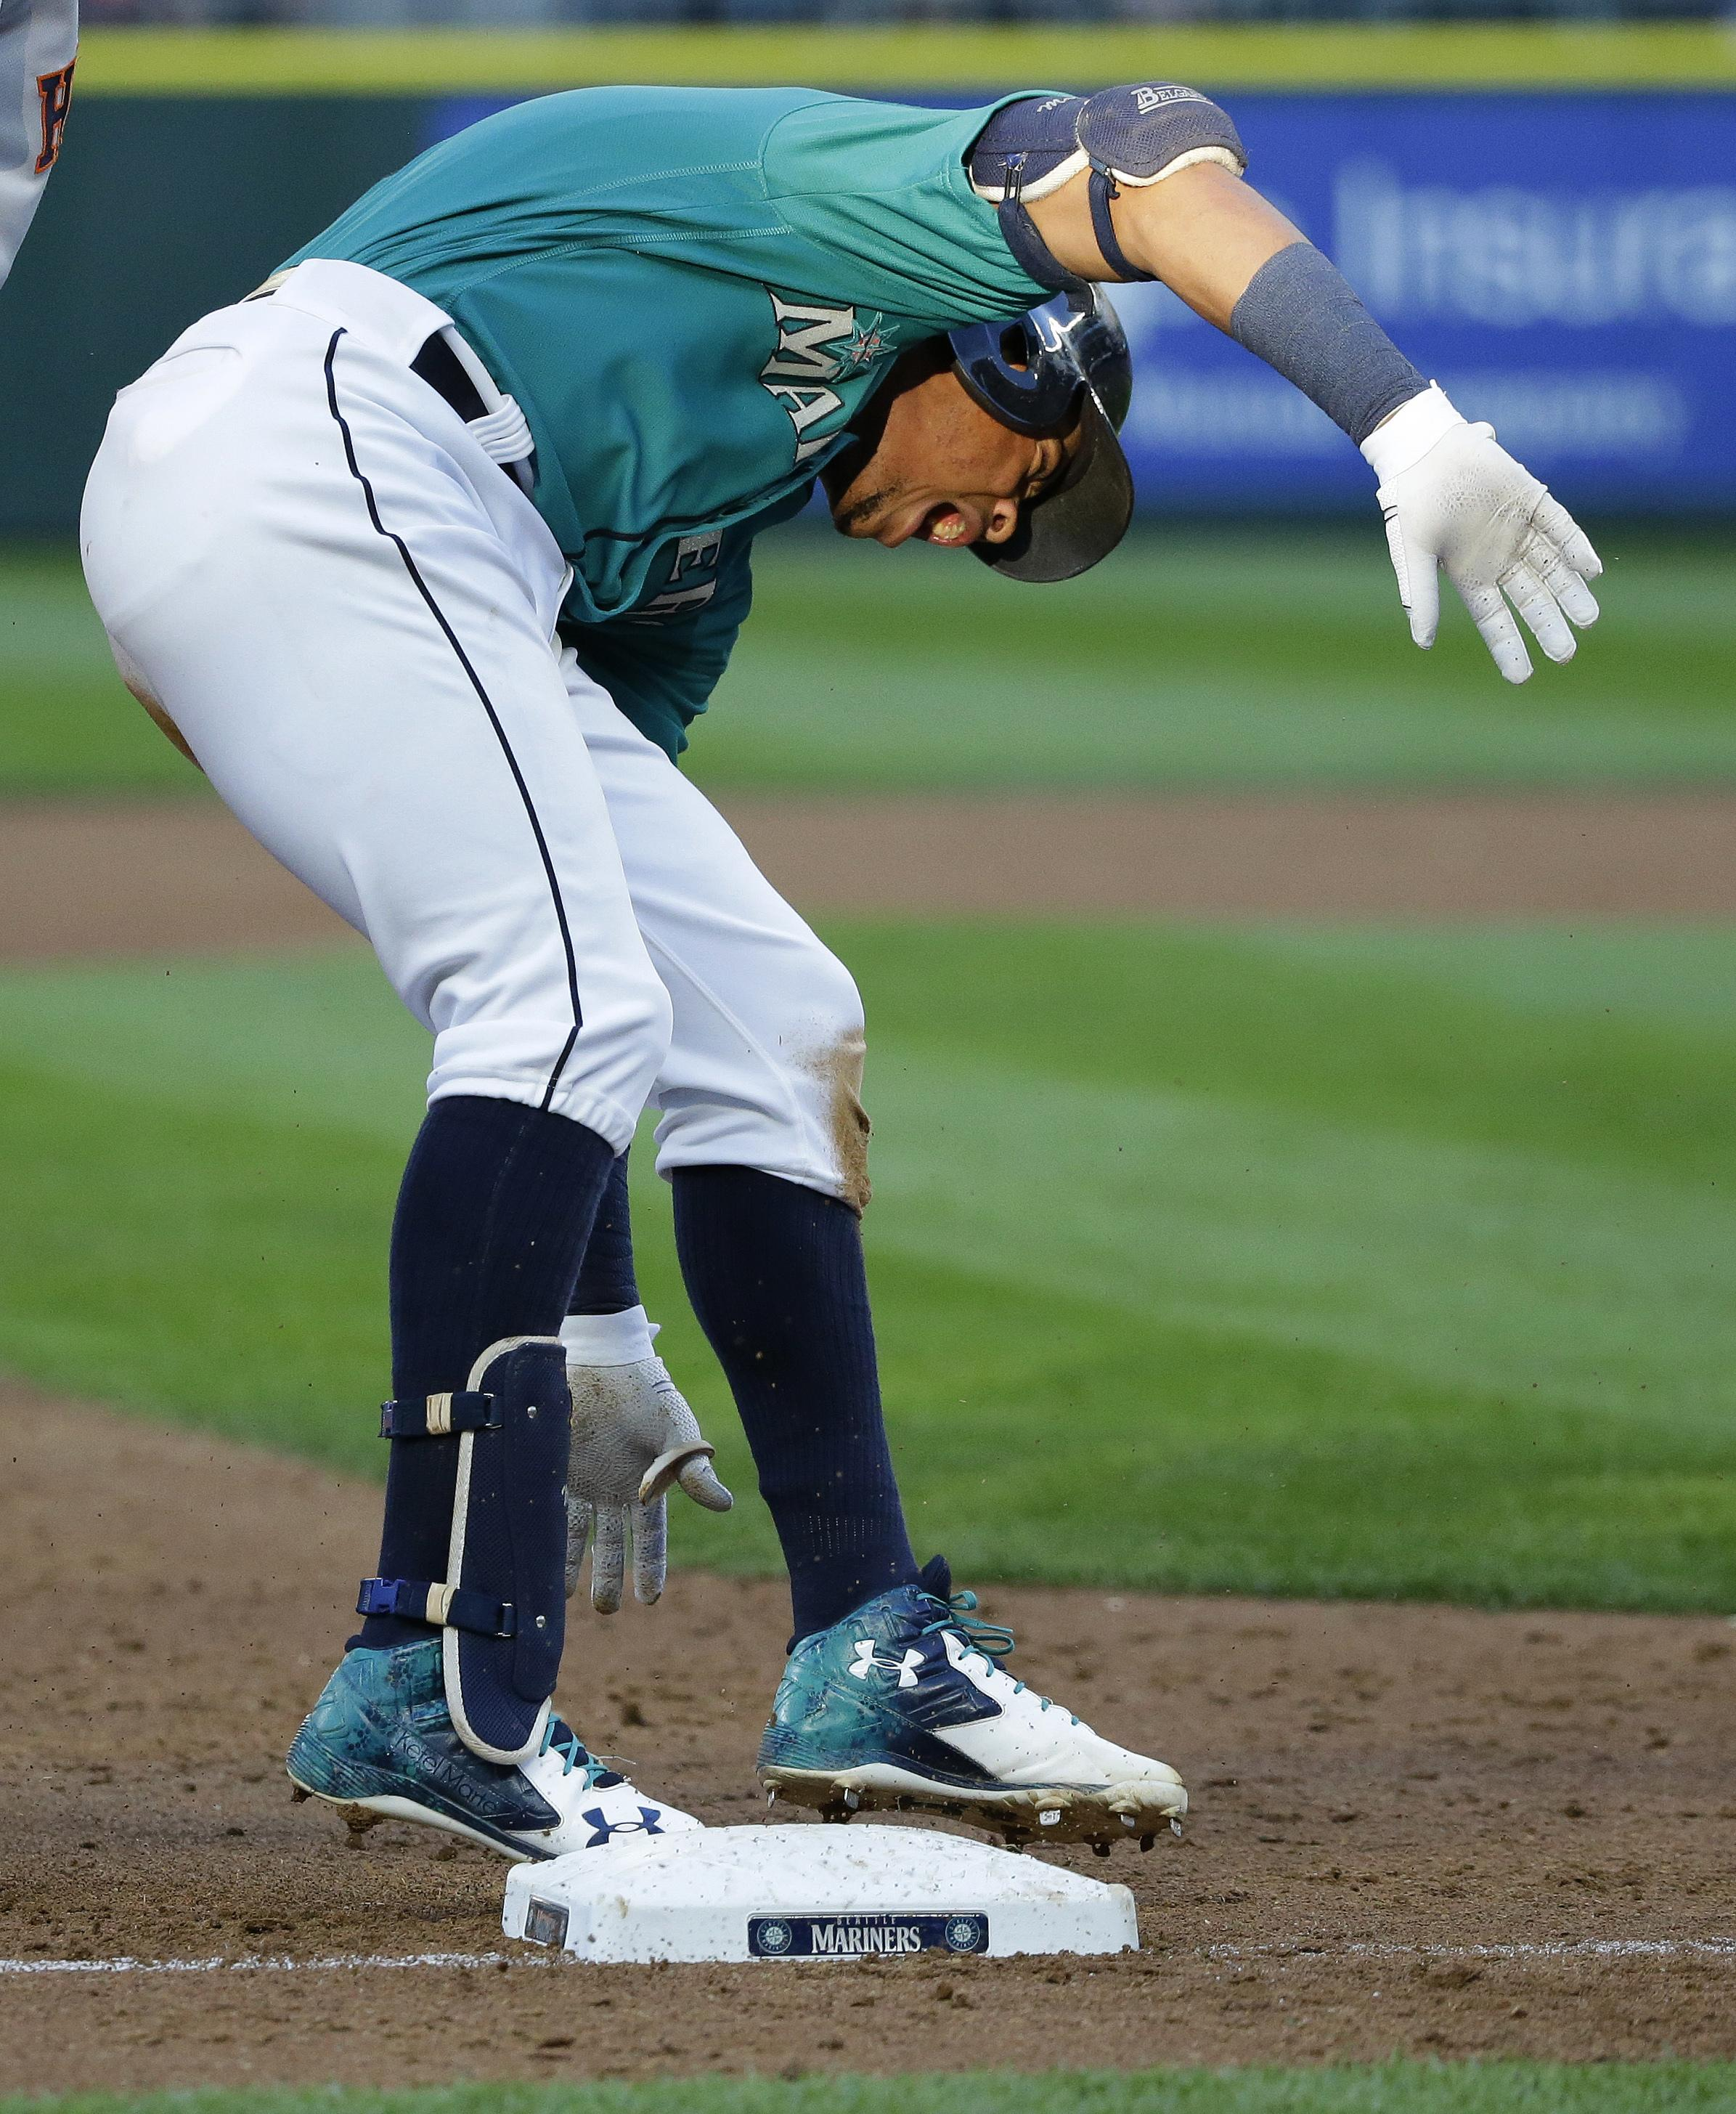 Mariners lay egg in first game back from All-Star break